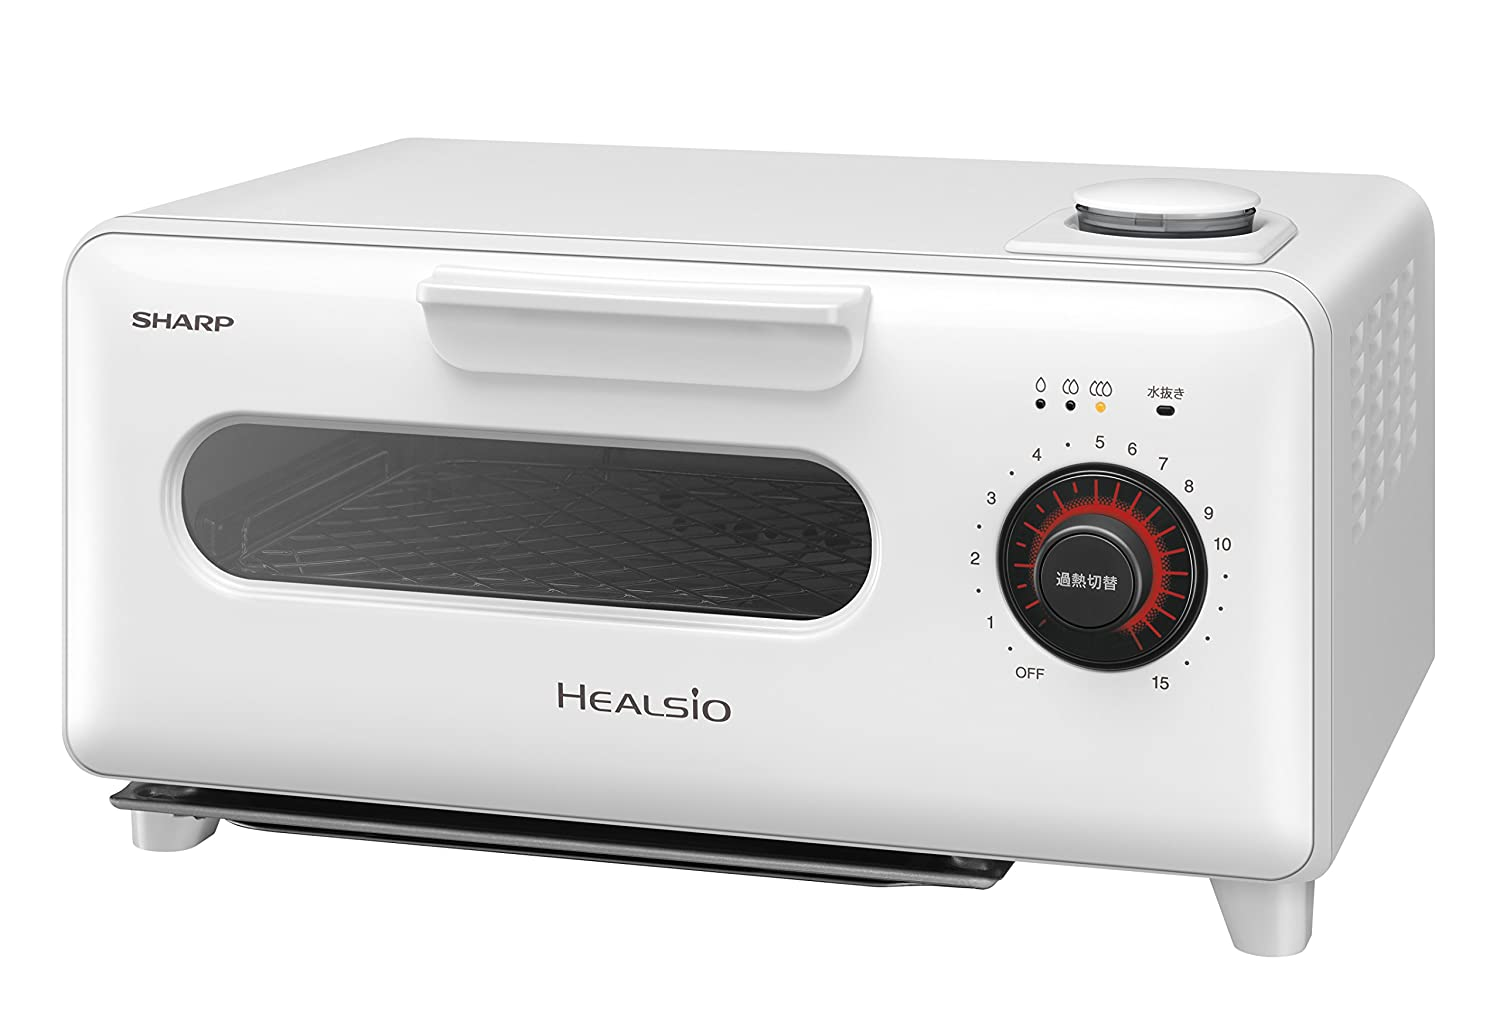 """SHARP Water oven """"HEALSiO Gurie"""" AX-H1-W (White)【Japan Domestic genuine products】"""